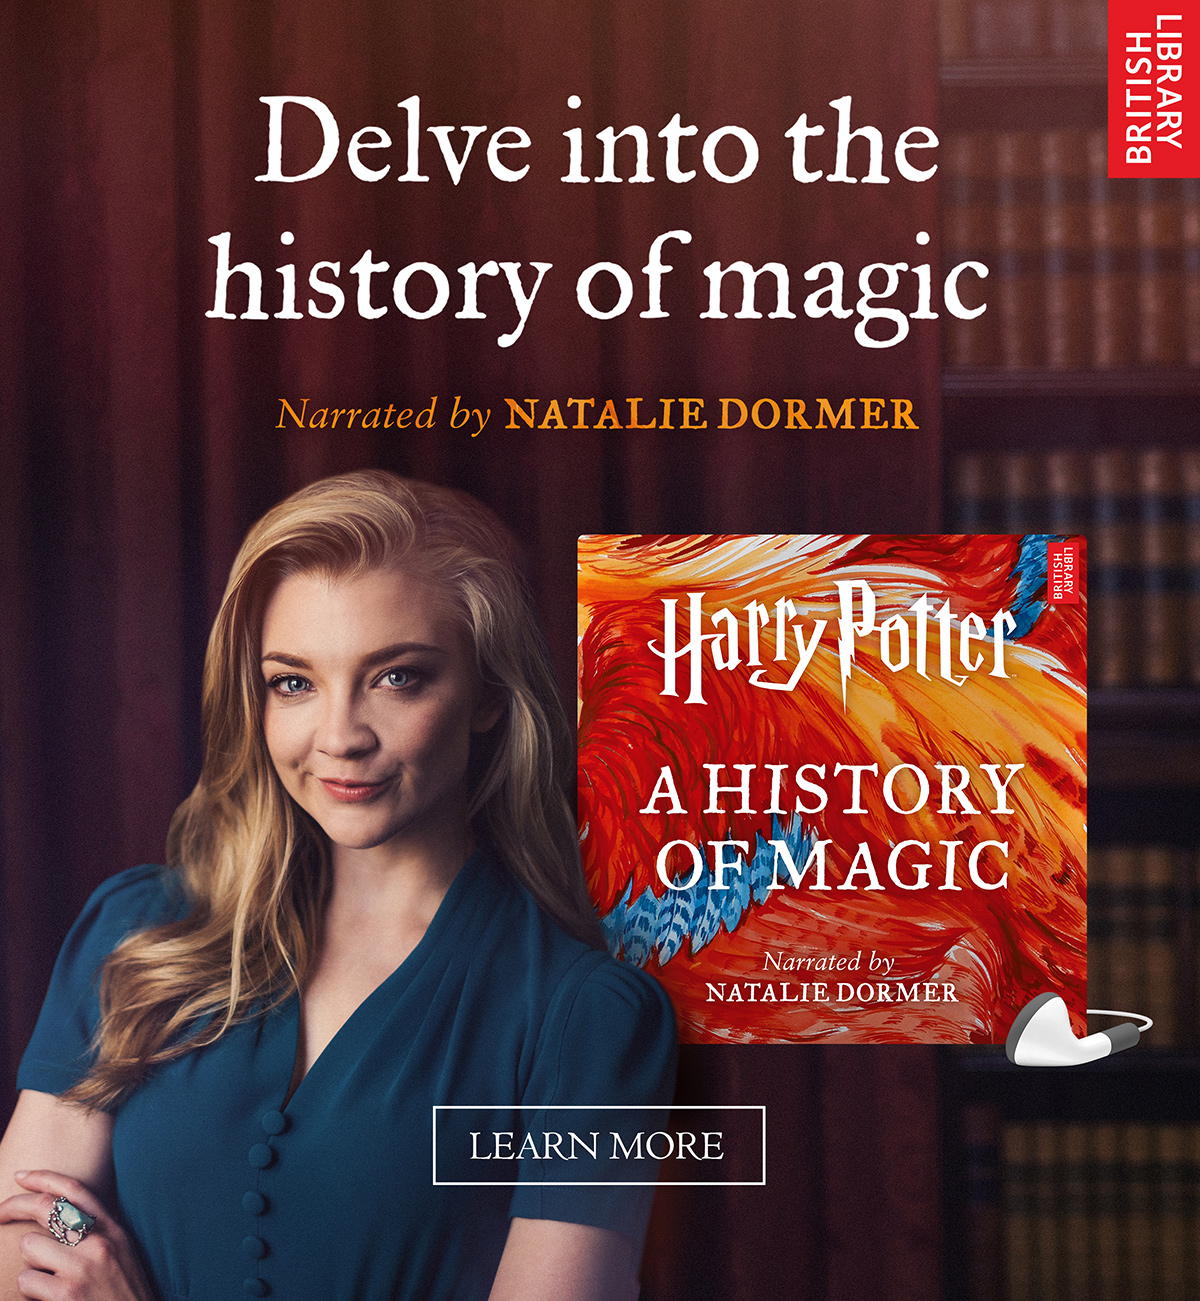 A History of Magic